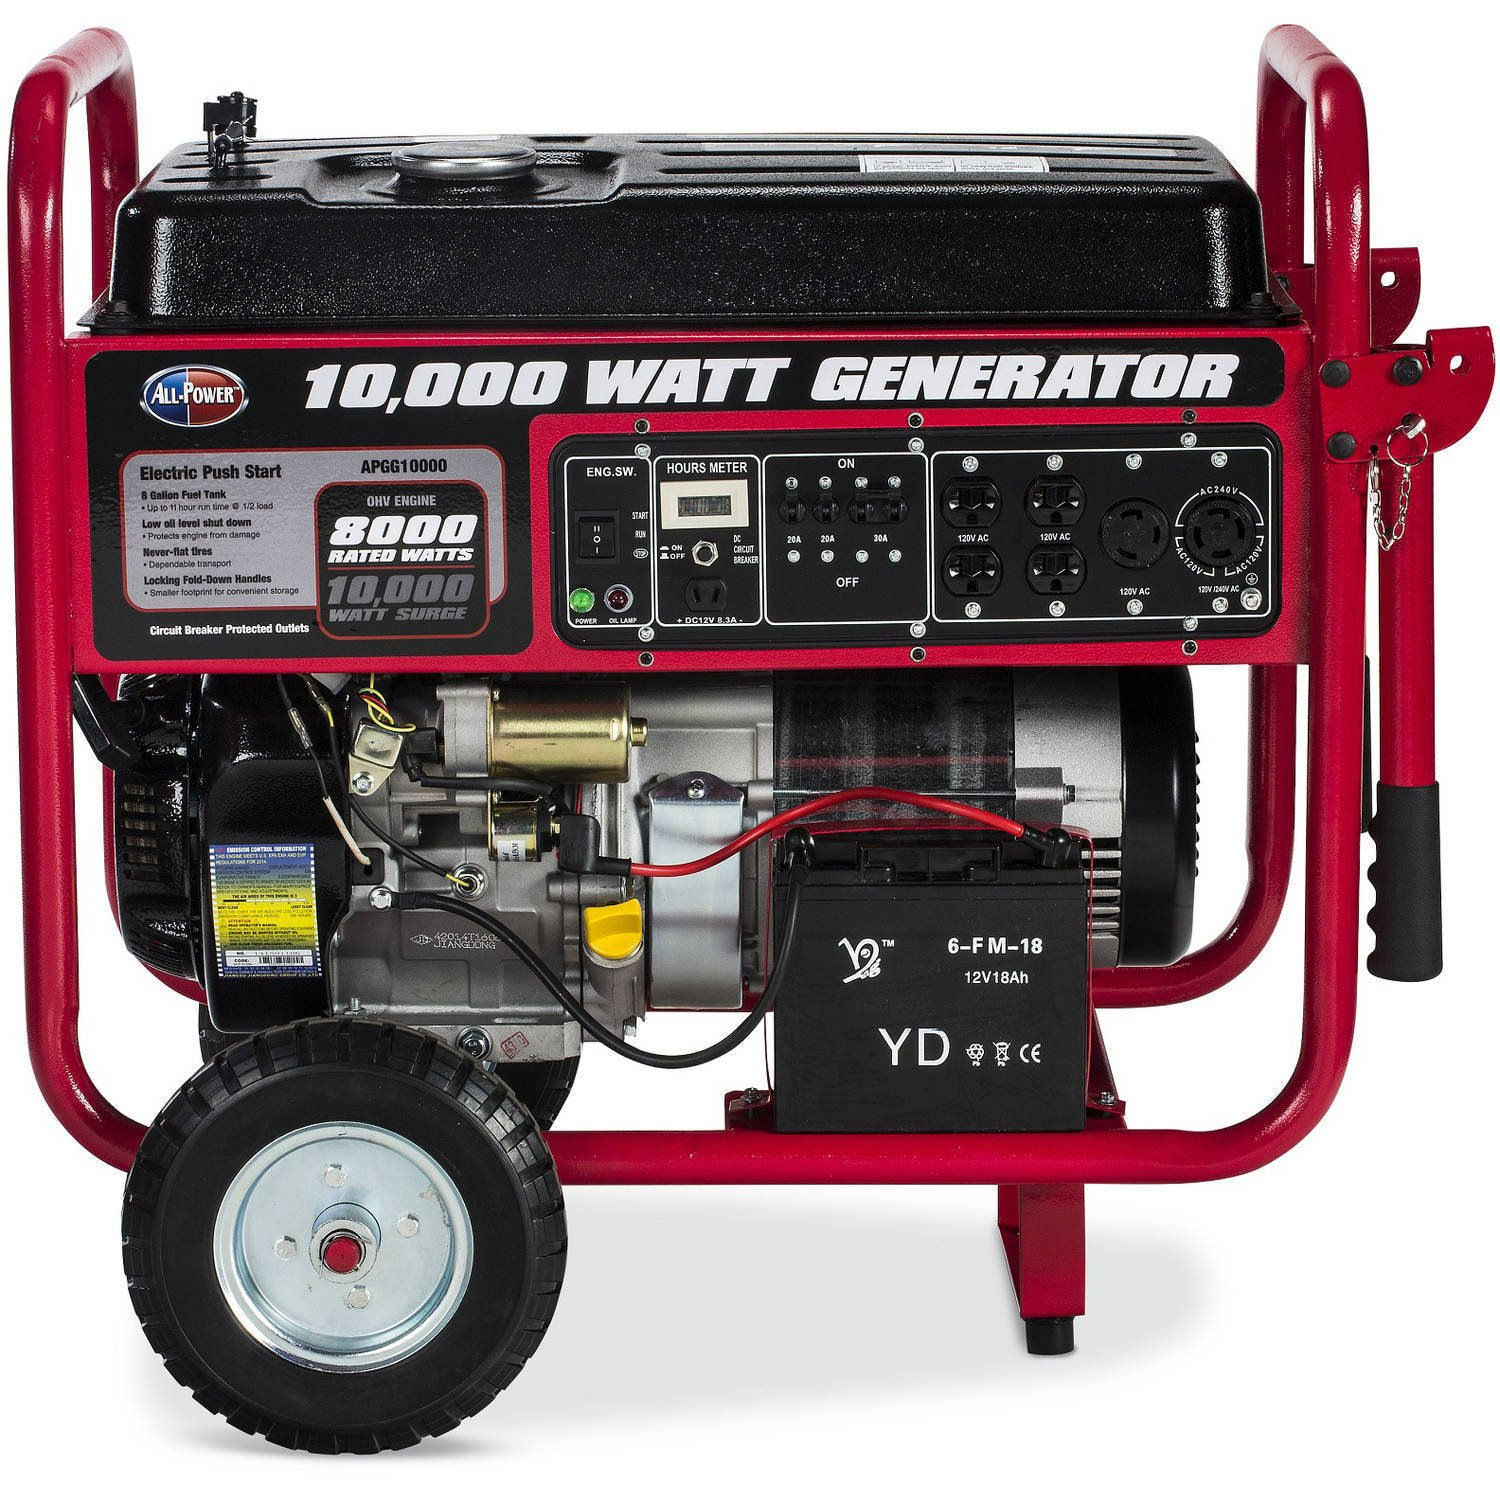 All Power America Apgg10000 10000w Watt Generator With Portable 7500 Wiring Diagram And Parts List Electric Start Gas For Home Use Emergency Backup Rv Standby